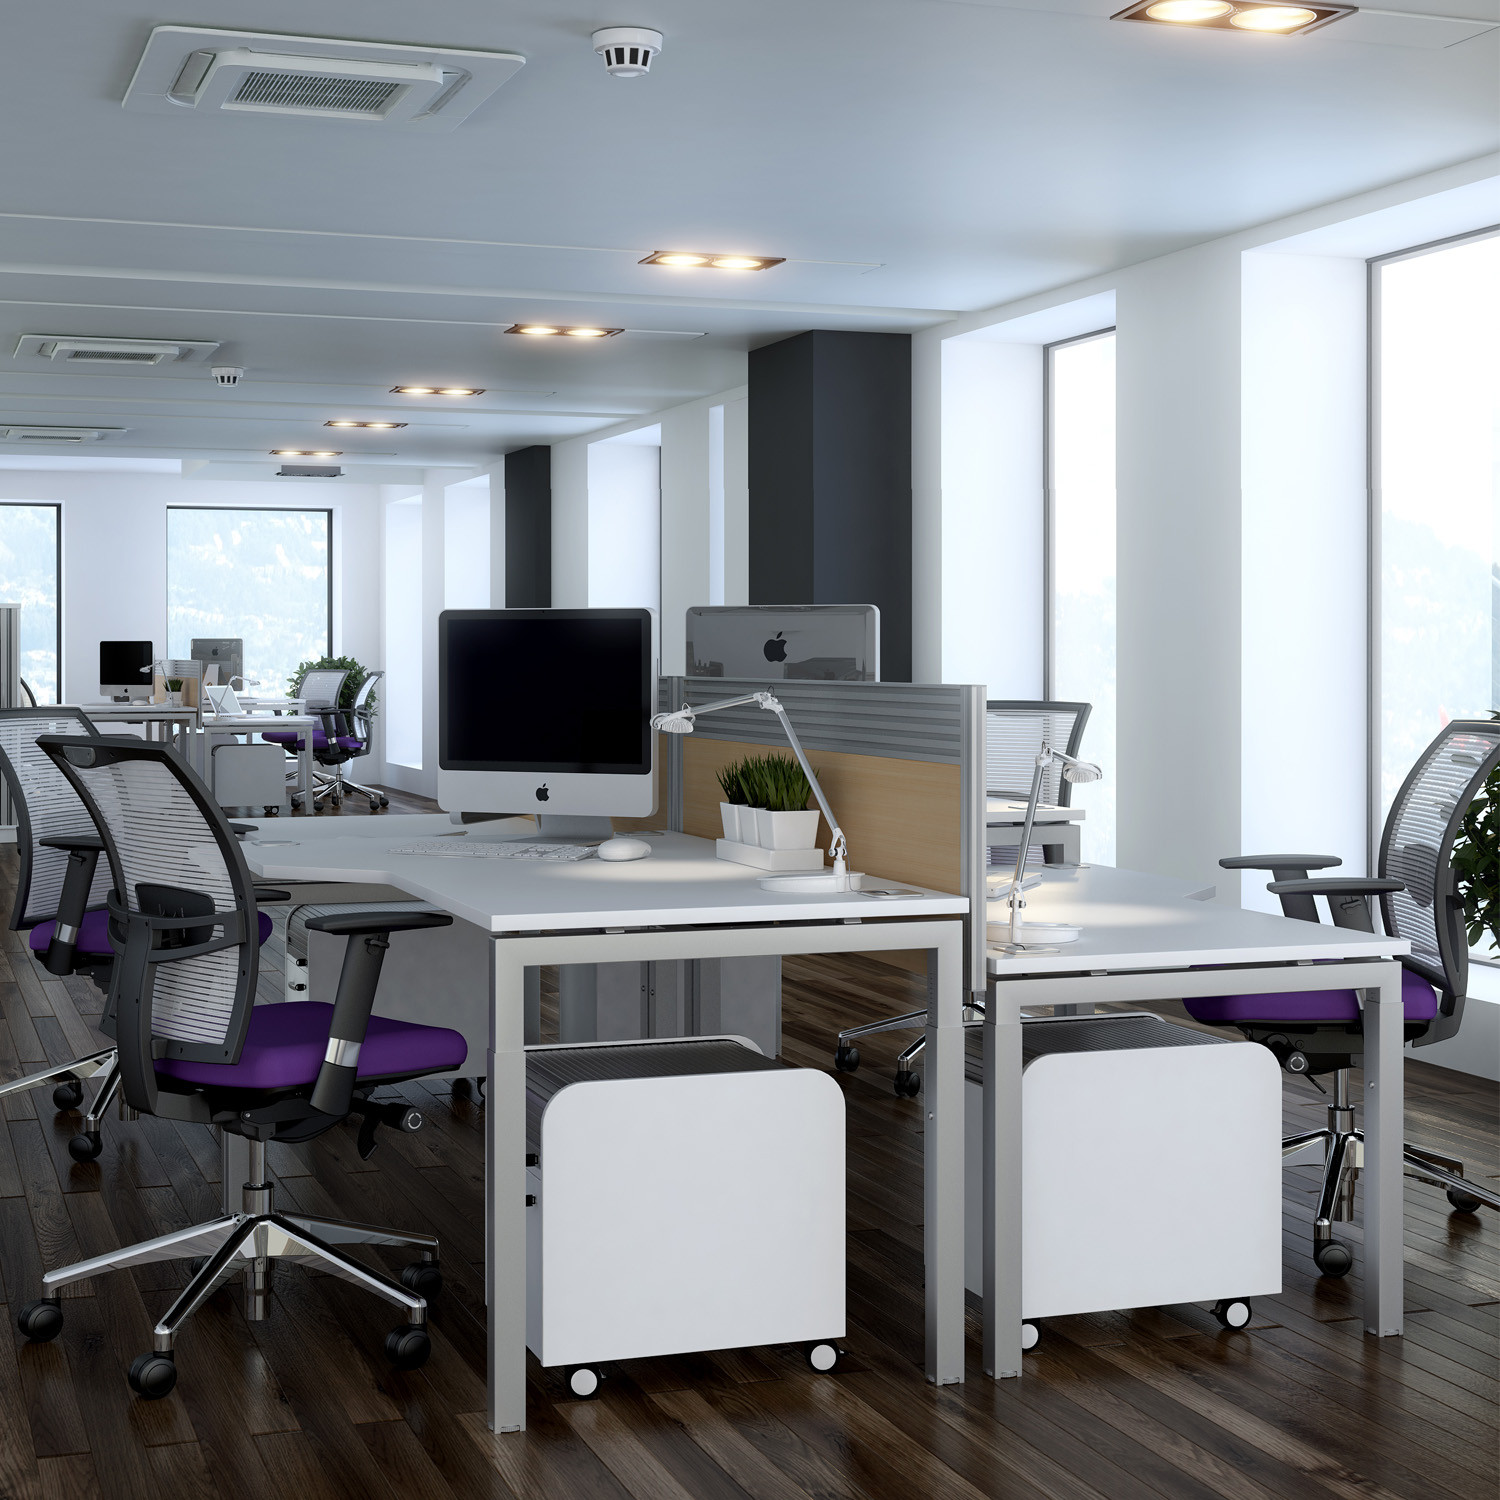 Advance Height Settable Desks